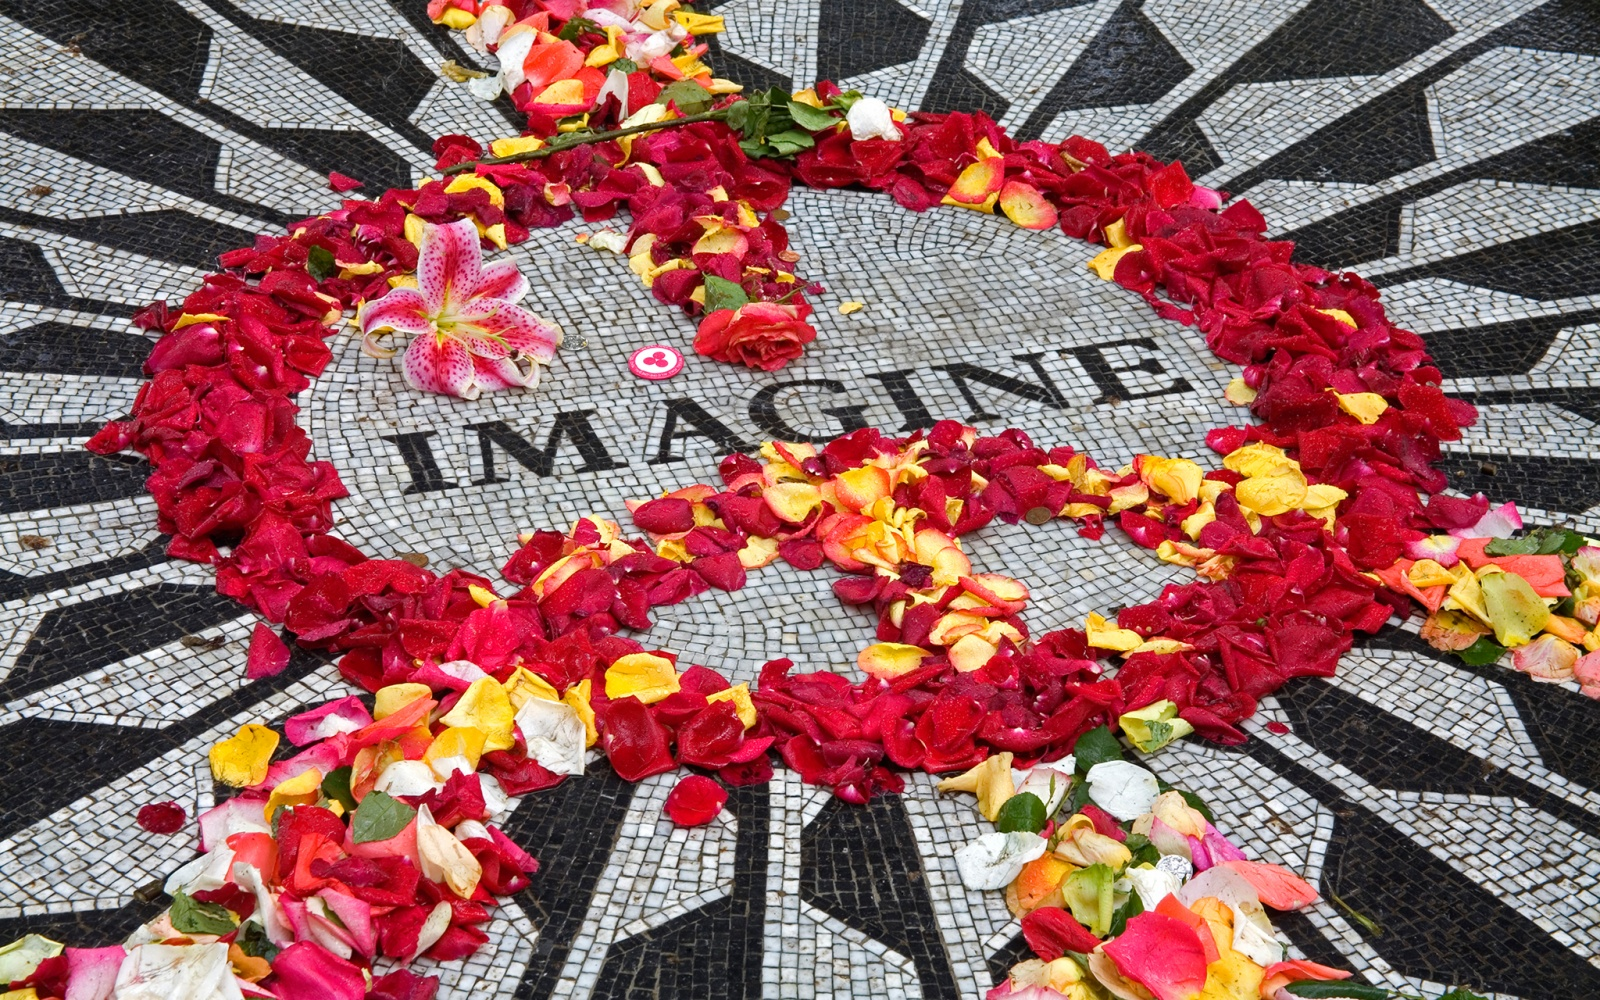 music, city, New York, New York City, John Lennon, Beatles, Central Park, Imagine, memorial